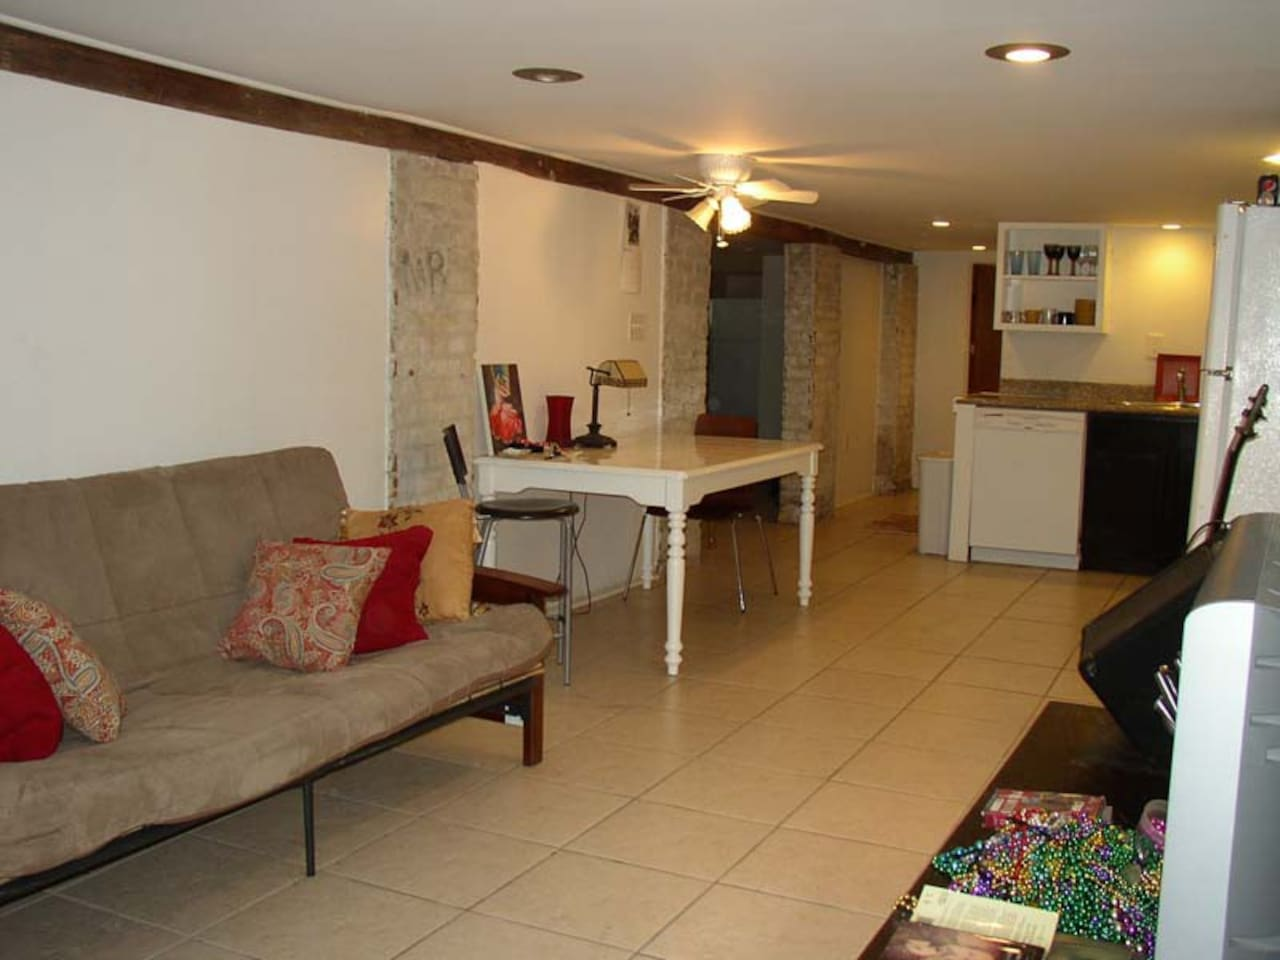 Open living room, dining area, kitchen